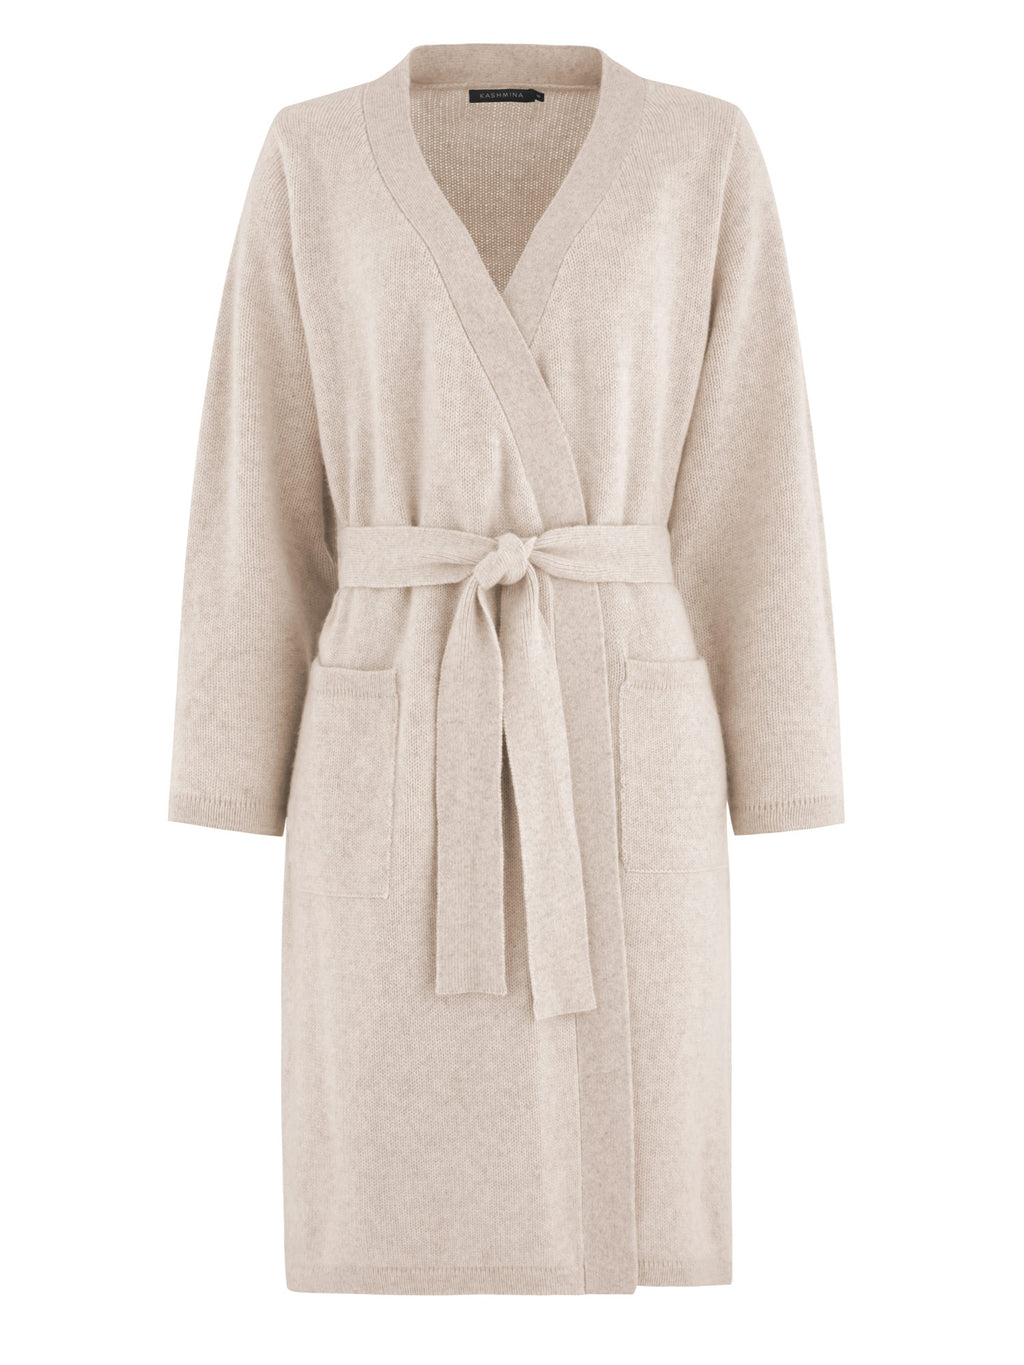 cashmere robe Lux in 100%cashmere by Kashmina